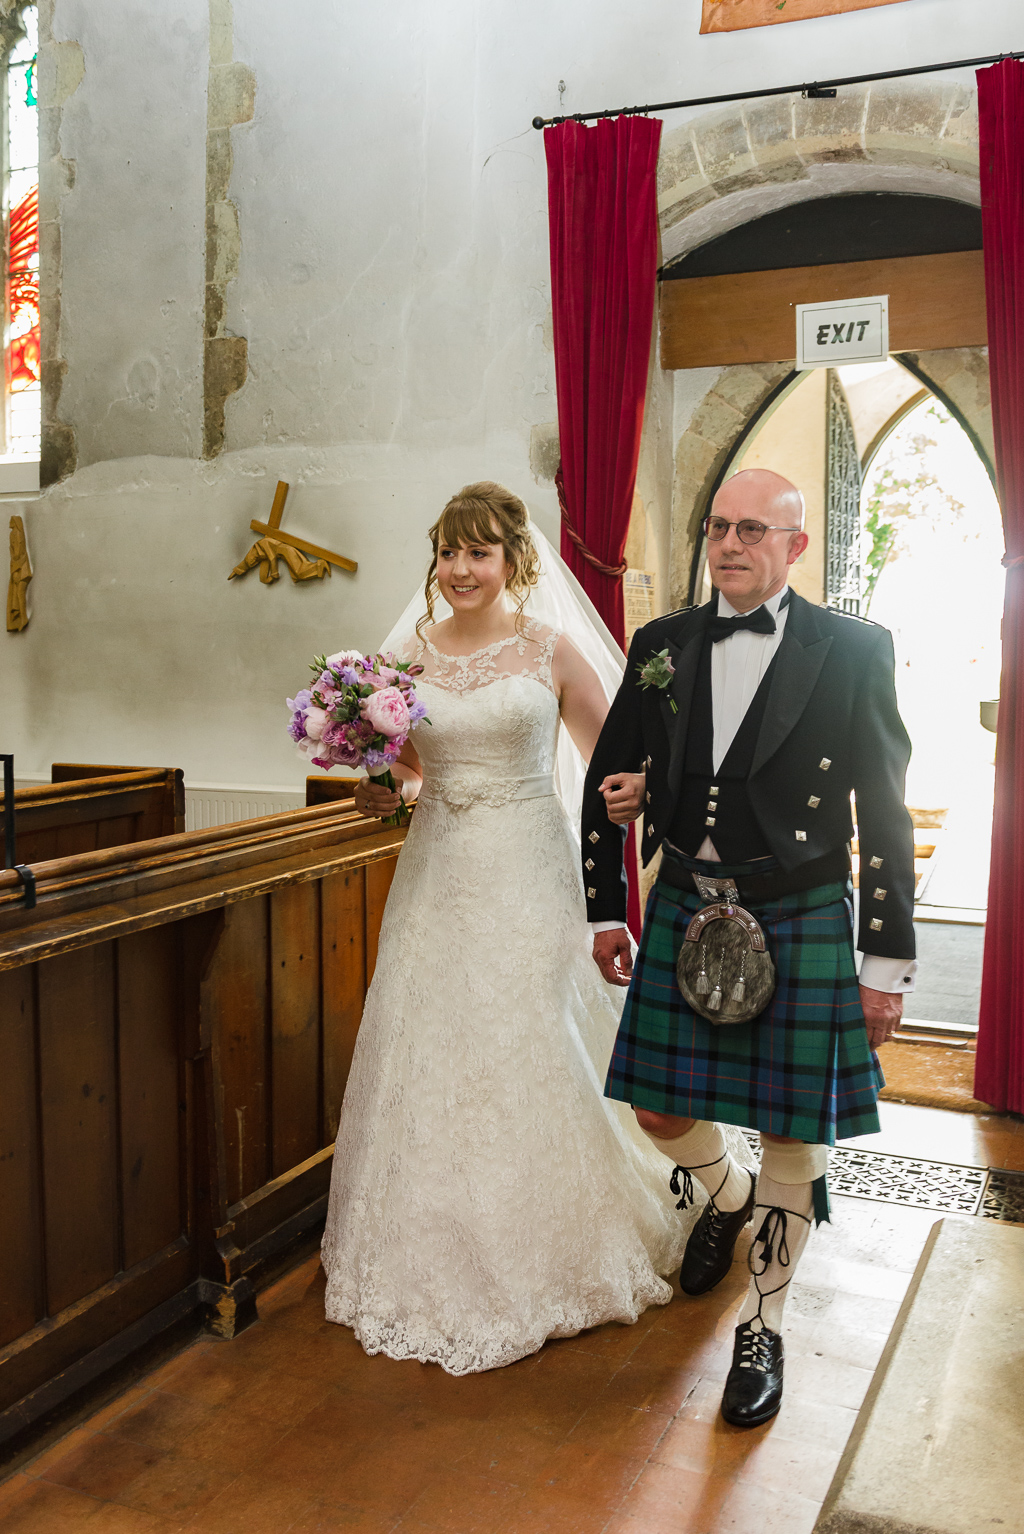 Bride and her father's entrance into St Paulinus Church for the wedding ceremony